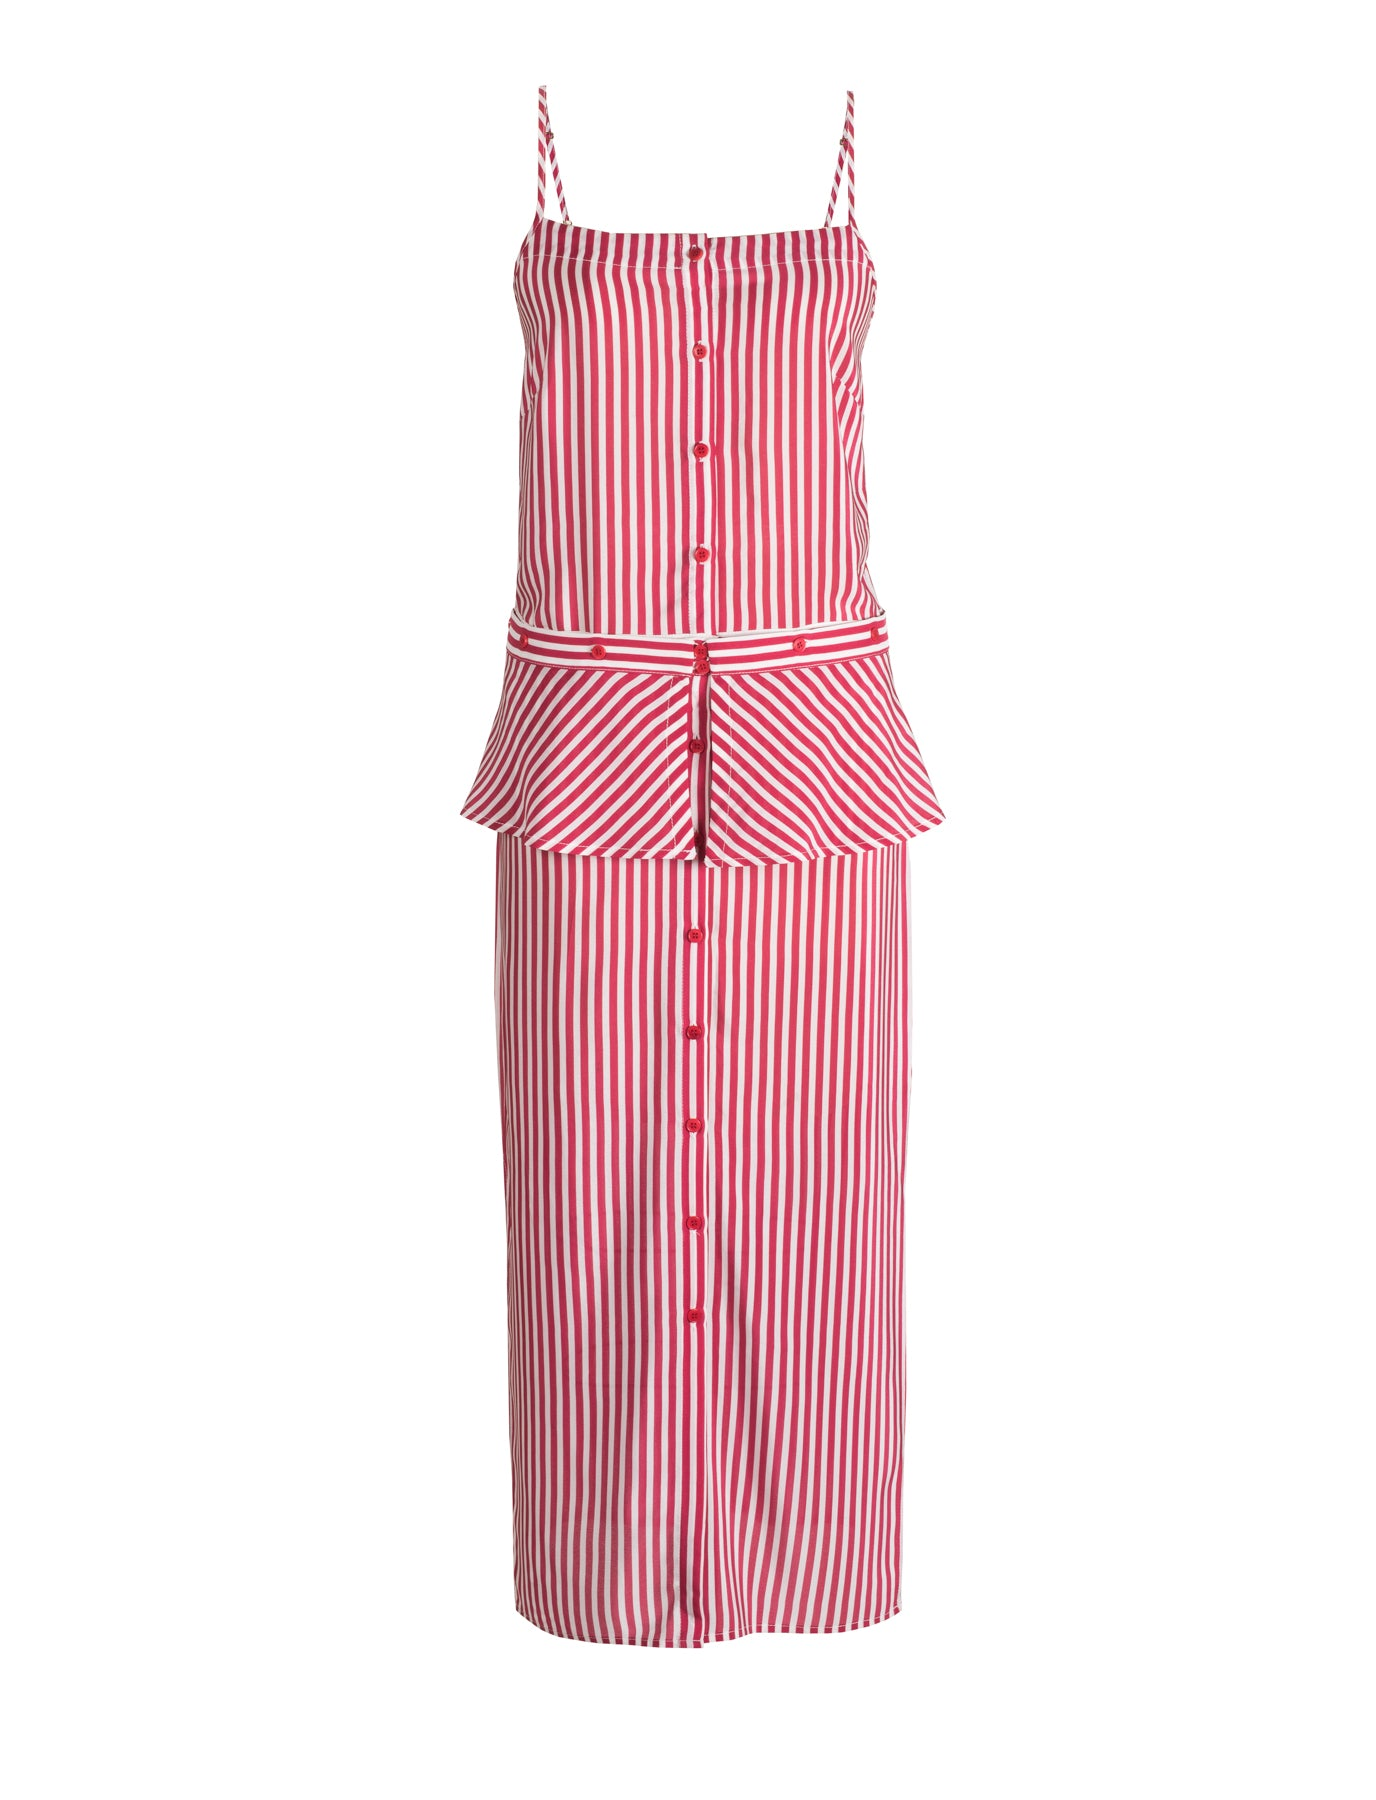 The Giselle Stripe - ISLE & ROW